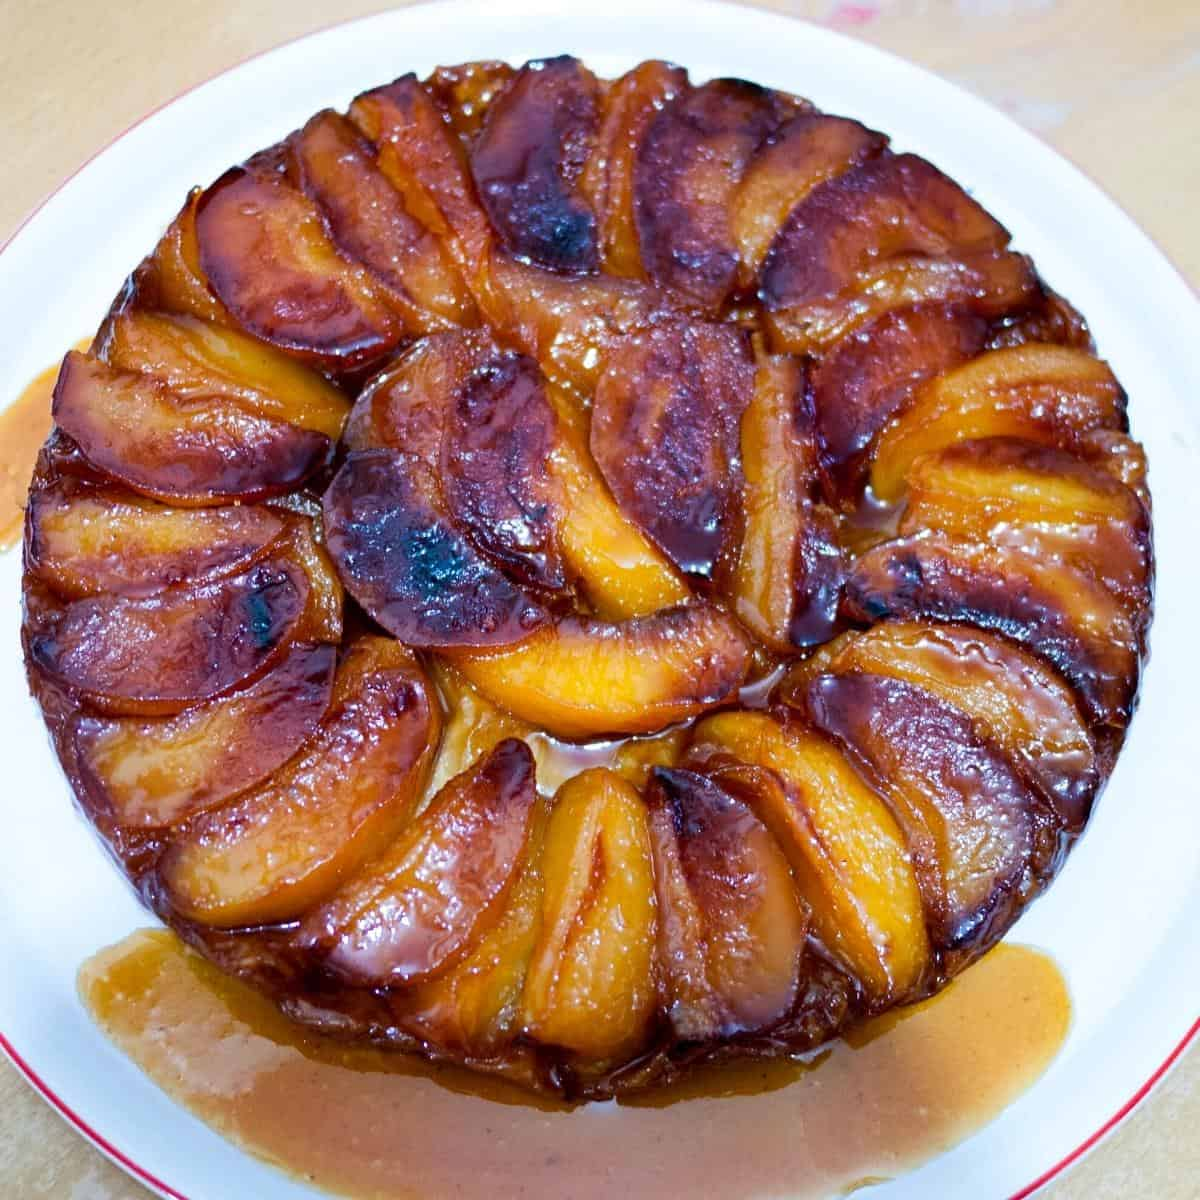 A plate with upside down apple tarte.